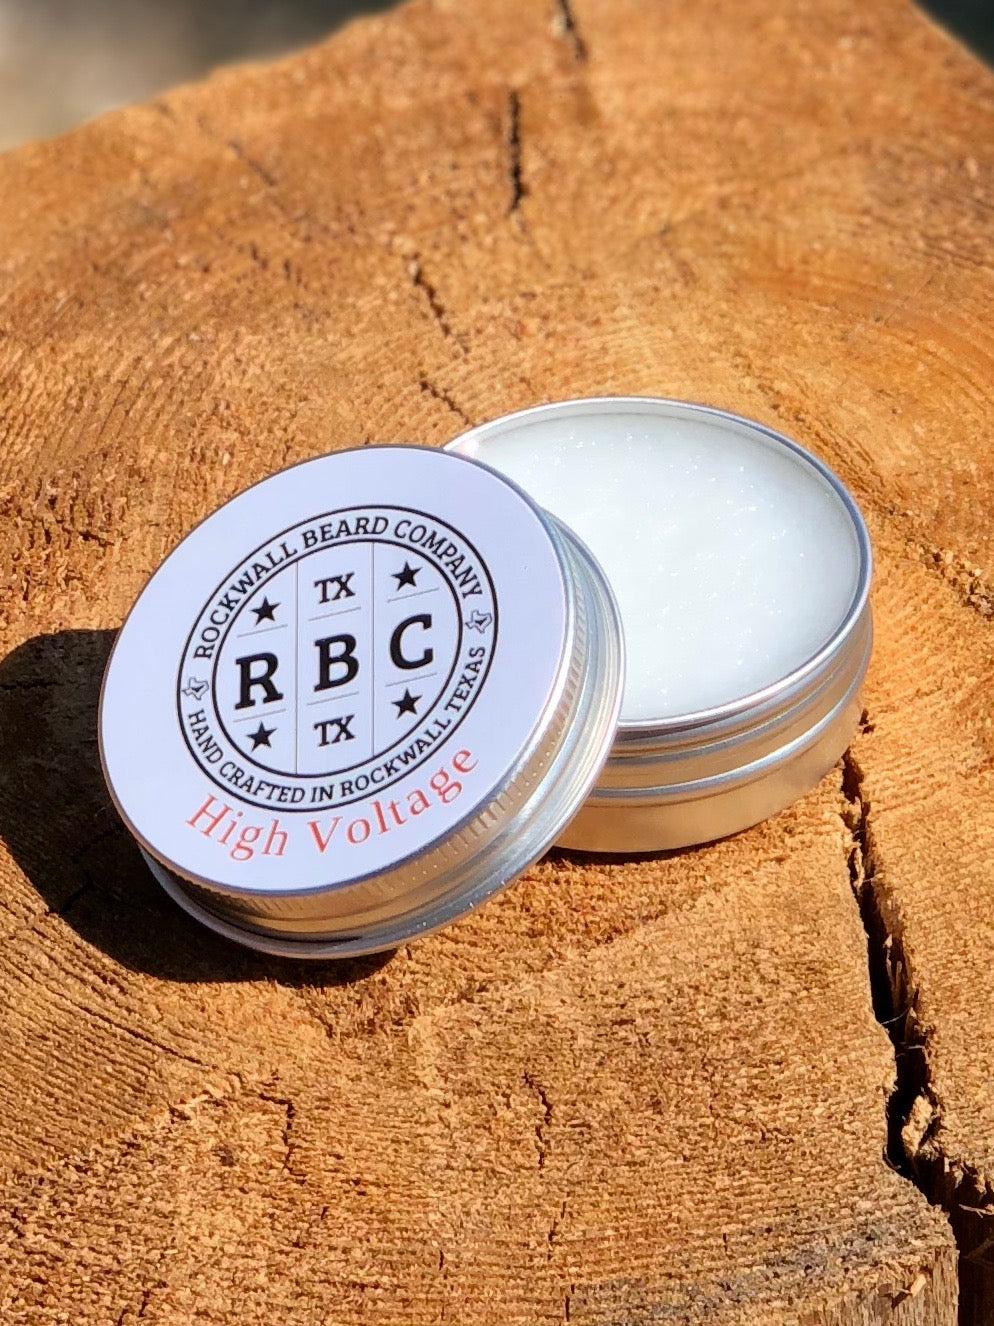 High Voltage Balm (Coconut Oil Base) - 2 oz. size